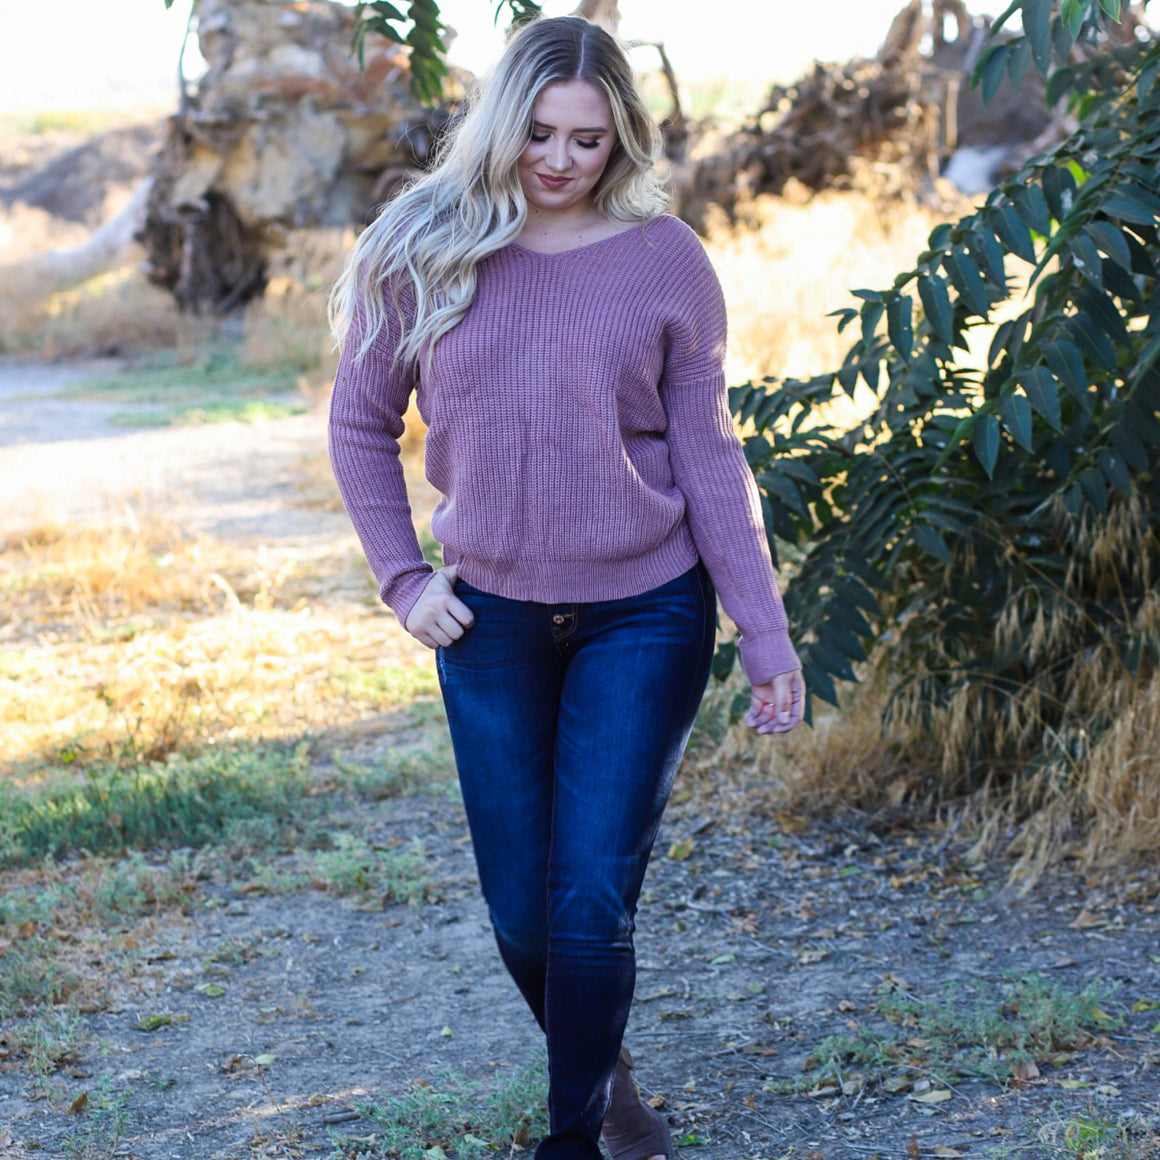 Sweater - Twist My Arm (Mauve)